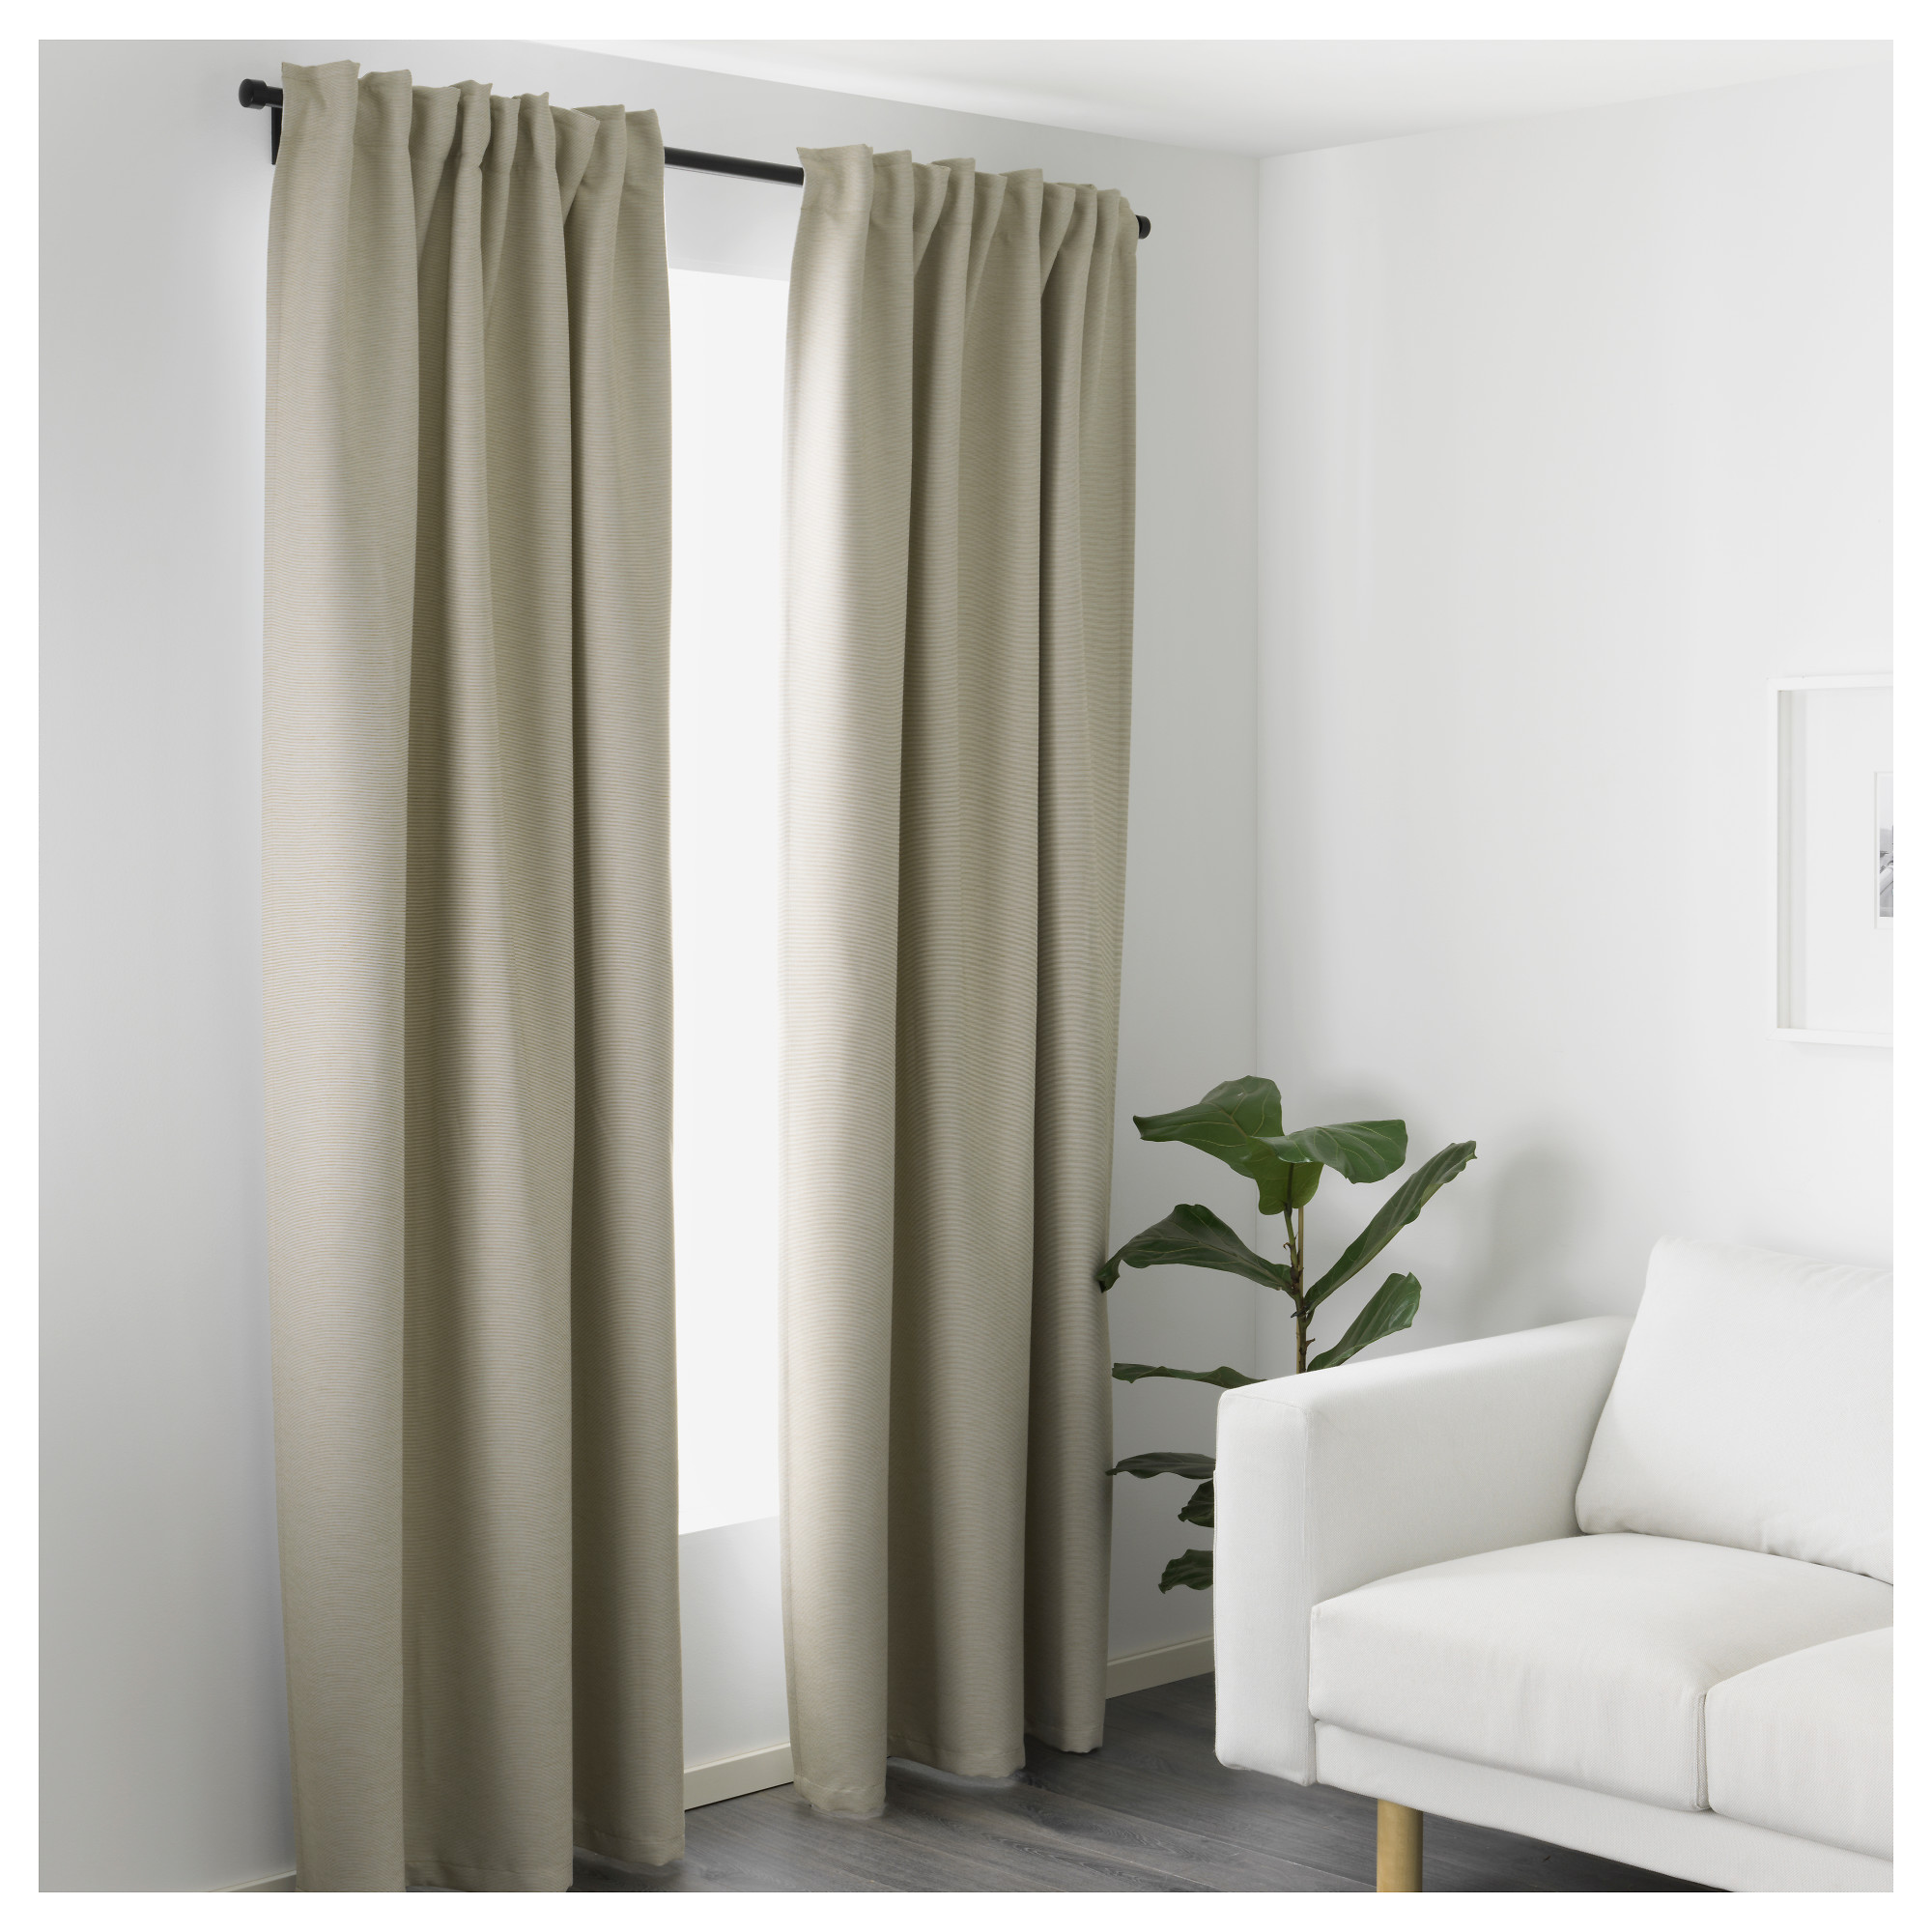 VILBORG Curtains, 1 pair - IKEA